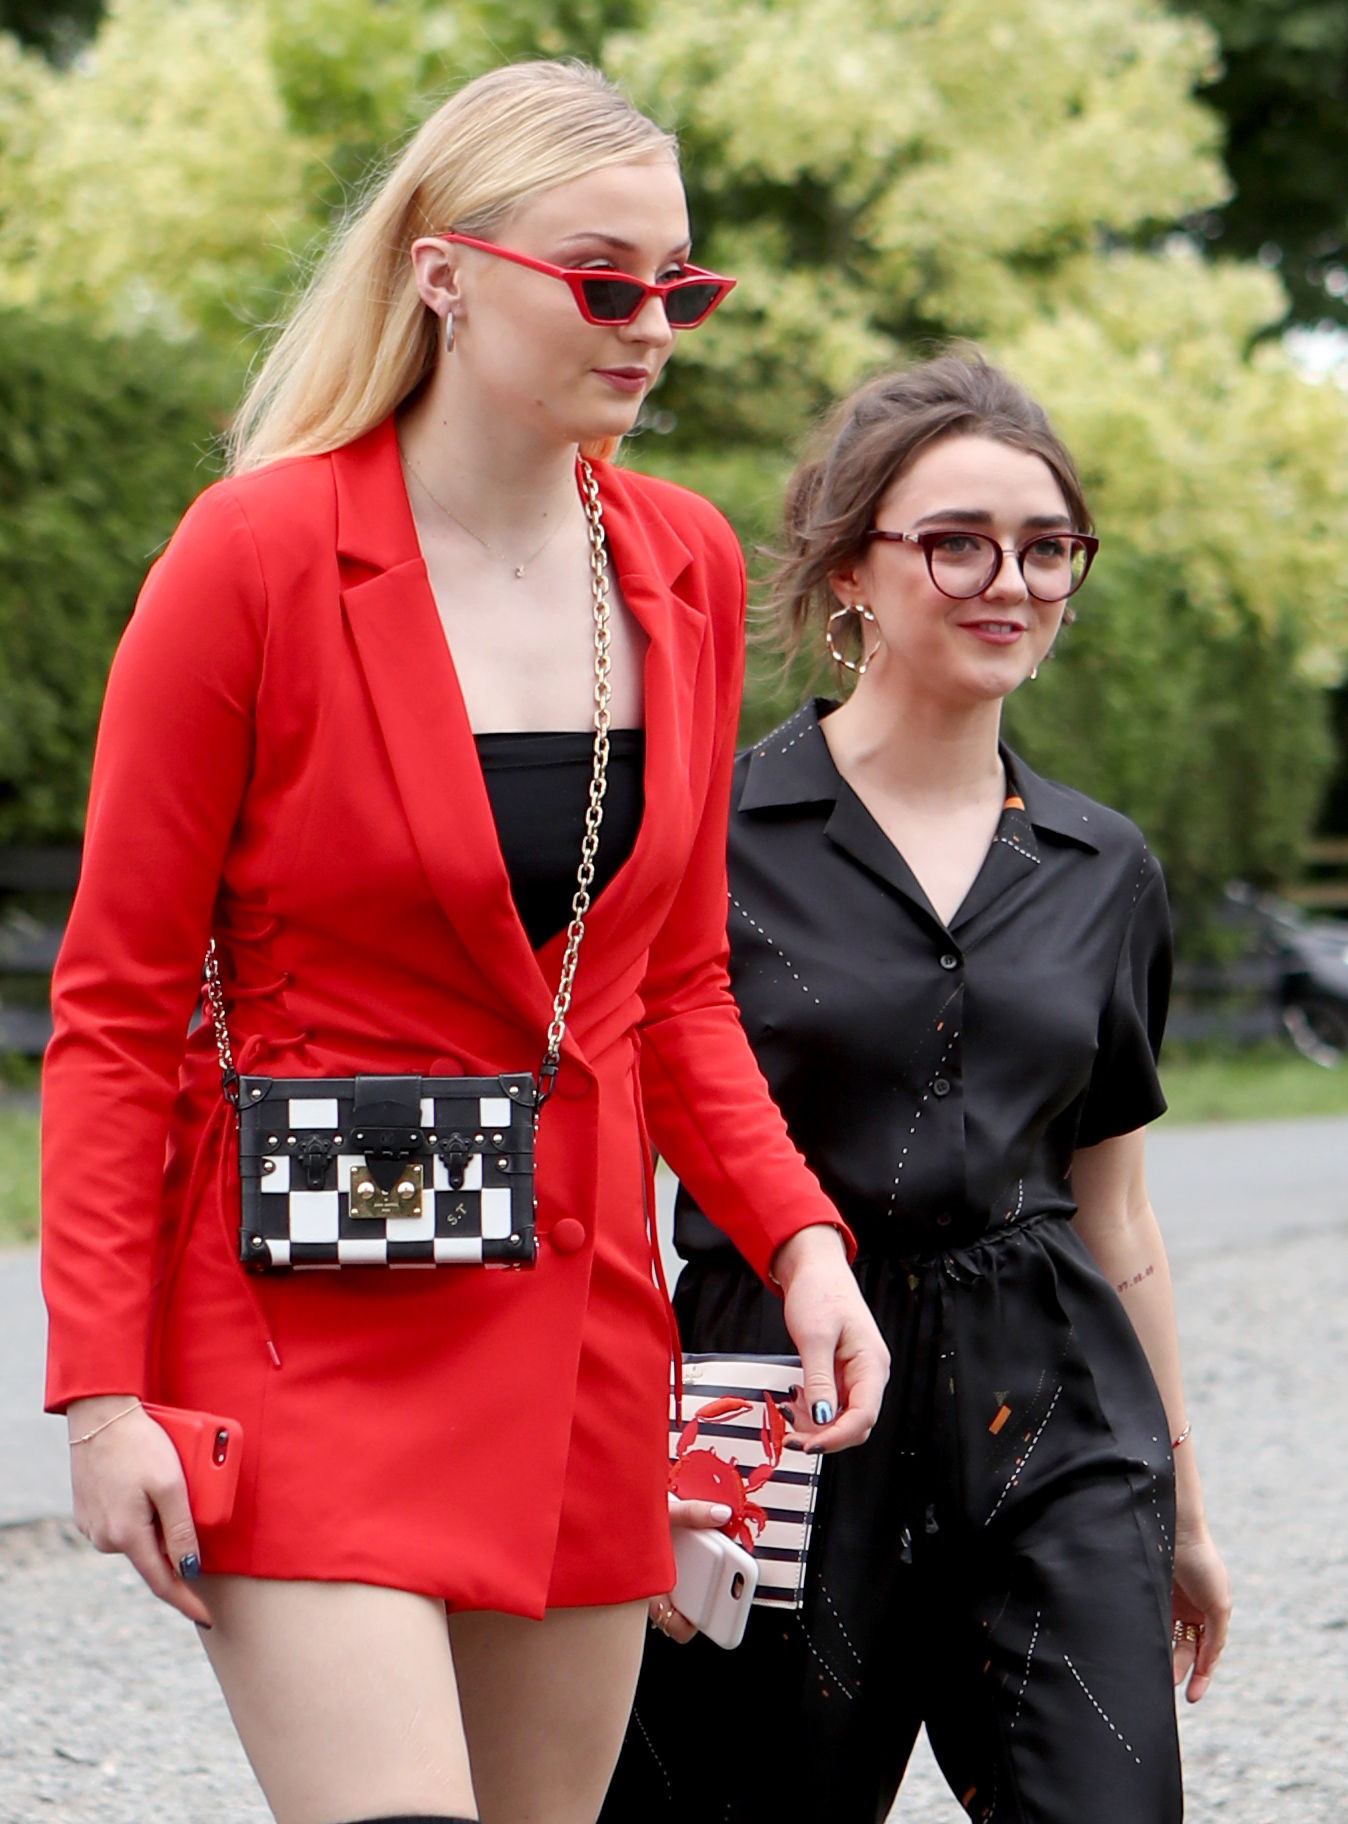 sophie turner and maisie williams at kit harington and rose leslie wedding